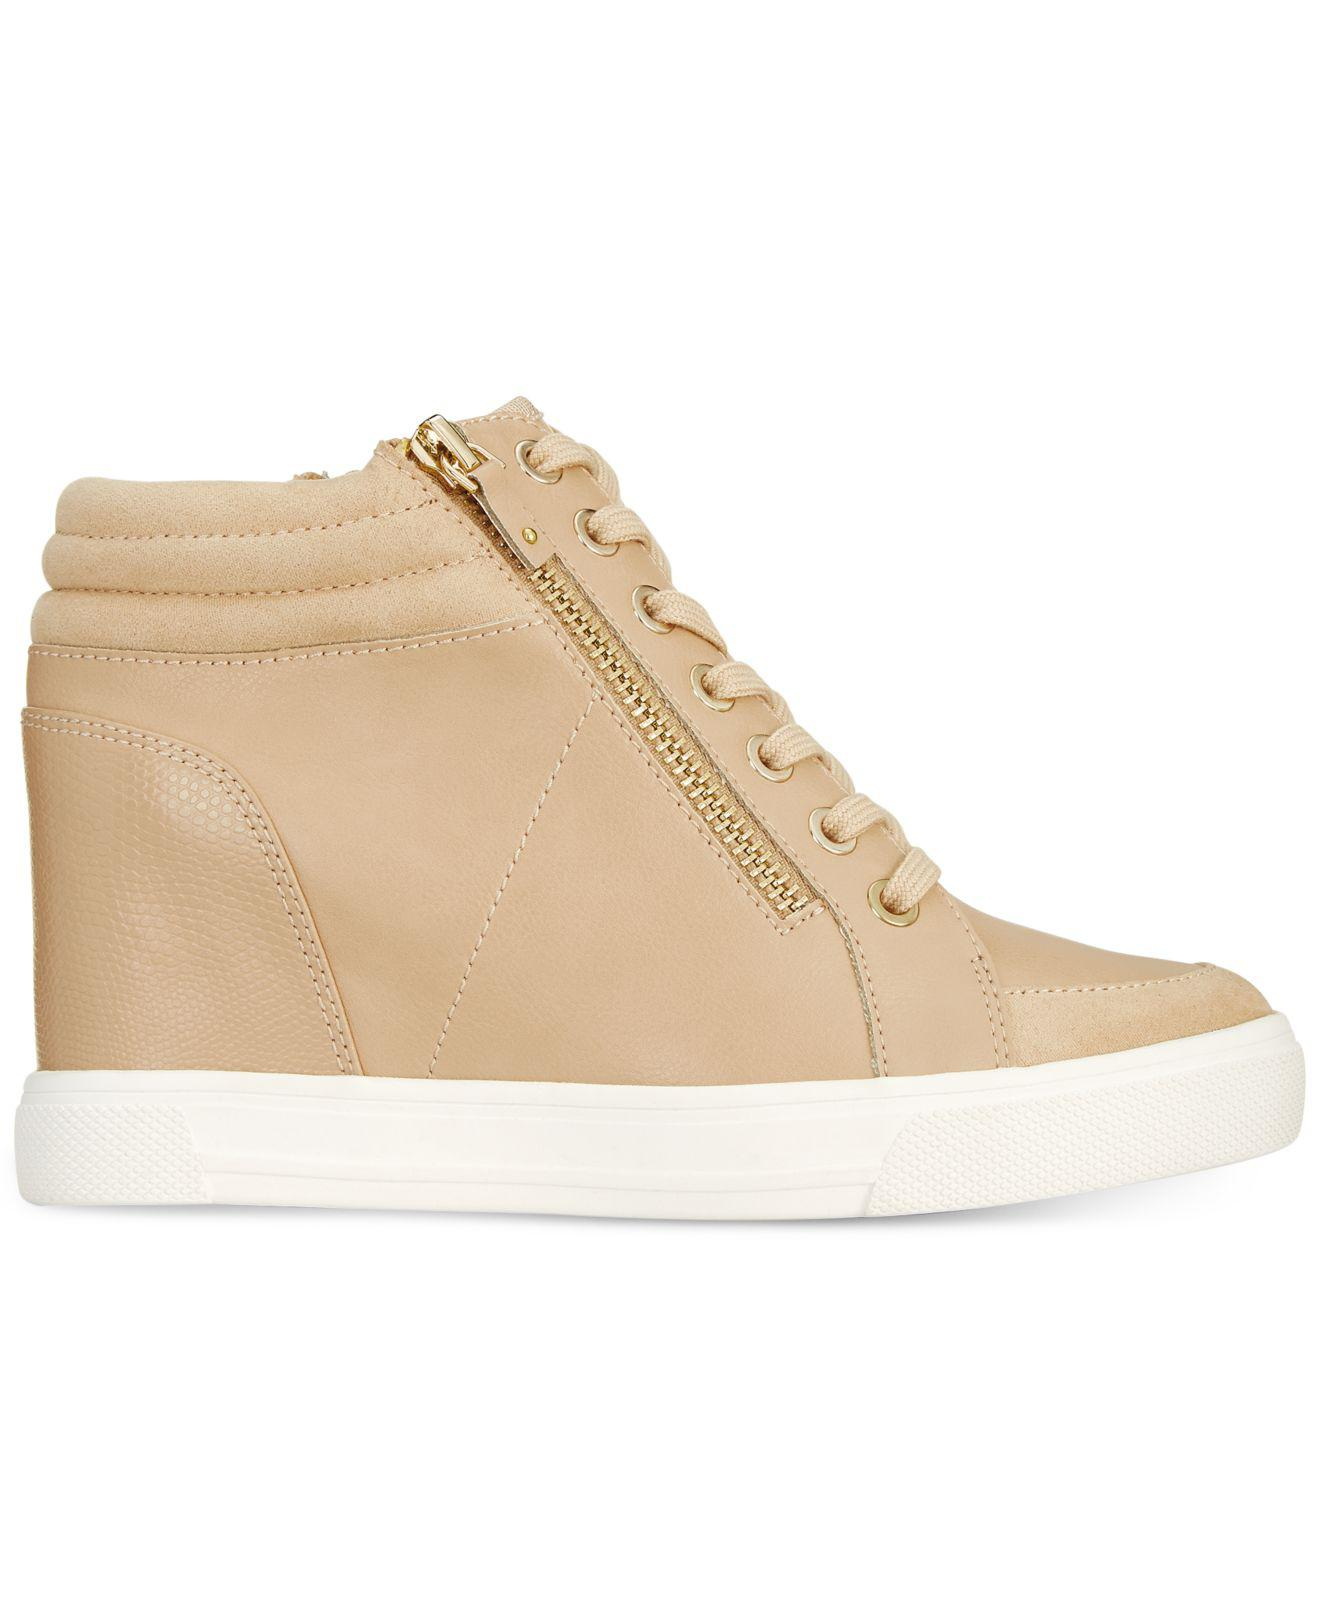 5ae684d564a5 Lyst - ALDO Kaia Lace-up Wedge Sneakers in Natural